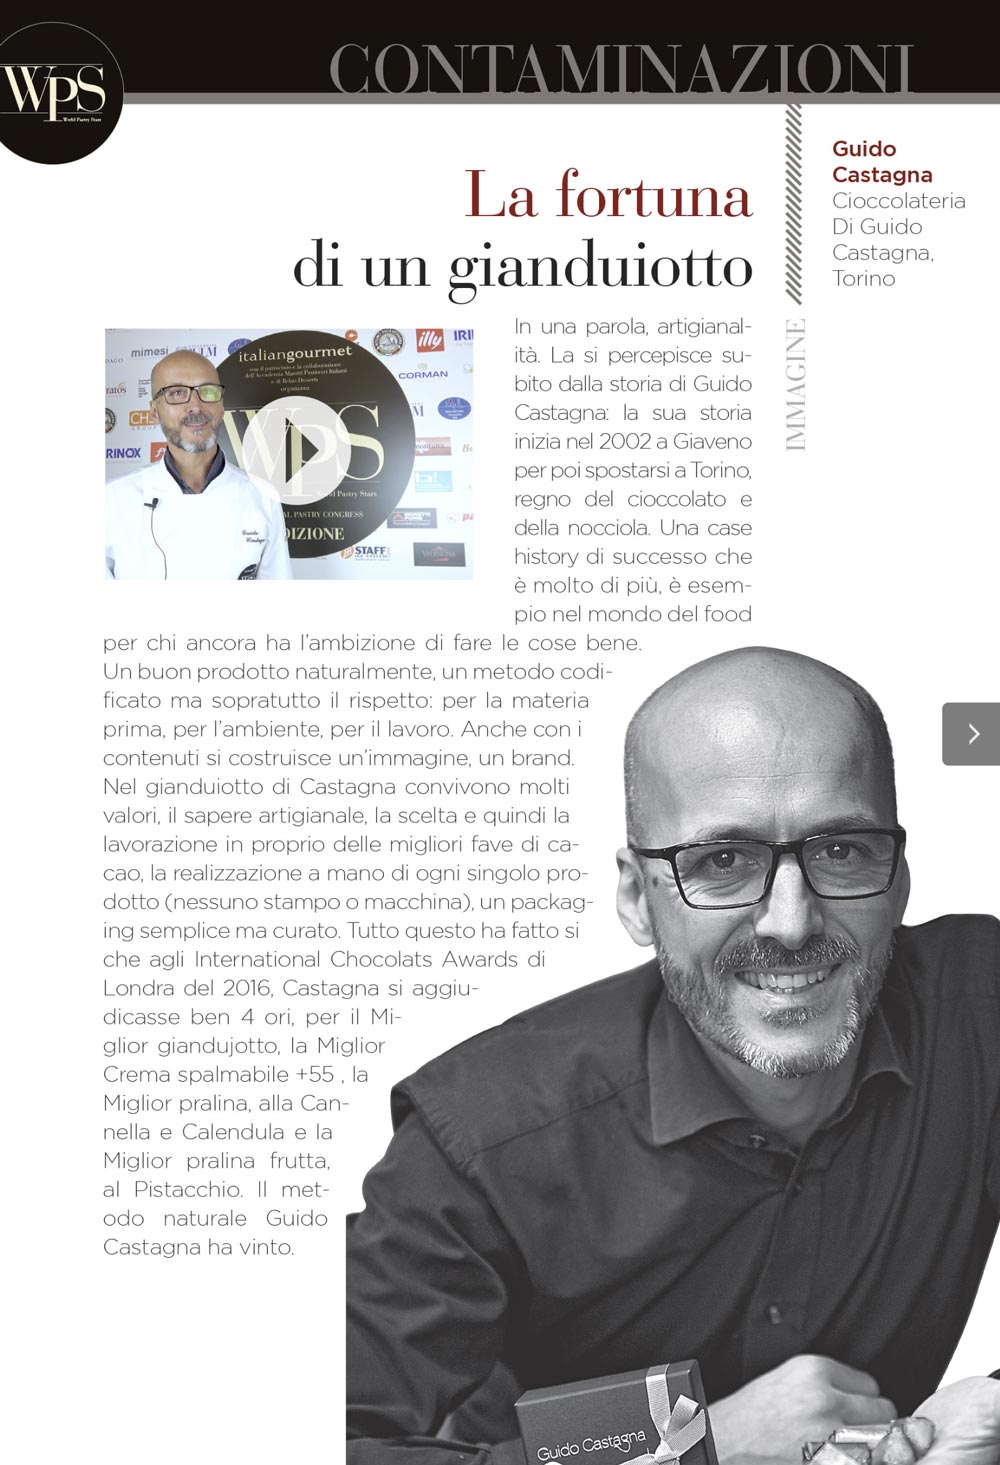 Guido Castagna intervista World Pastry Stars 2018